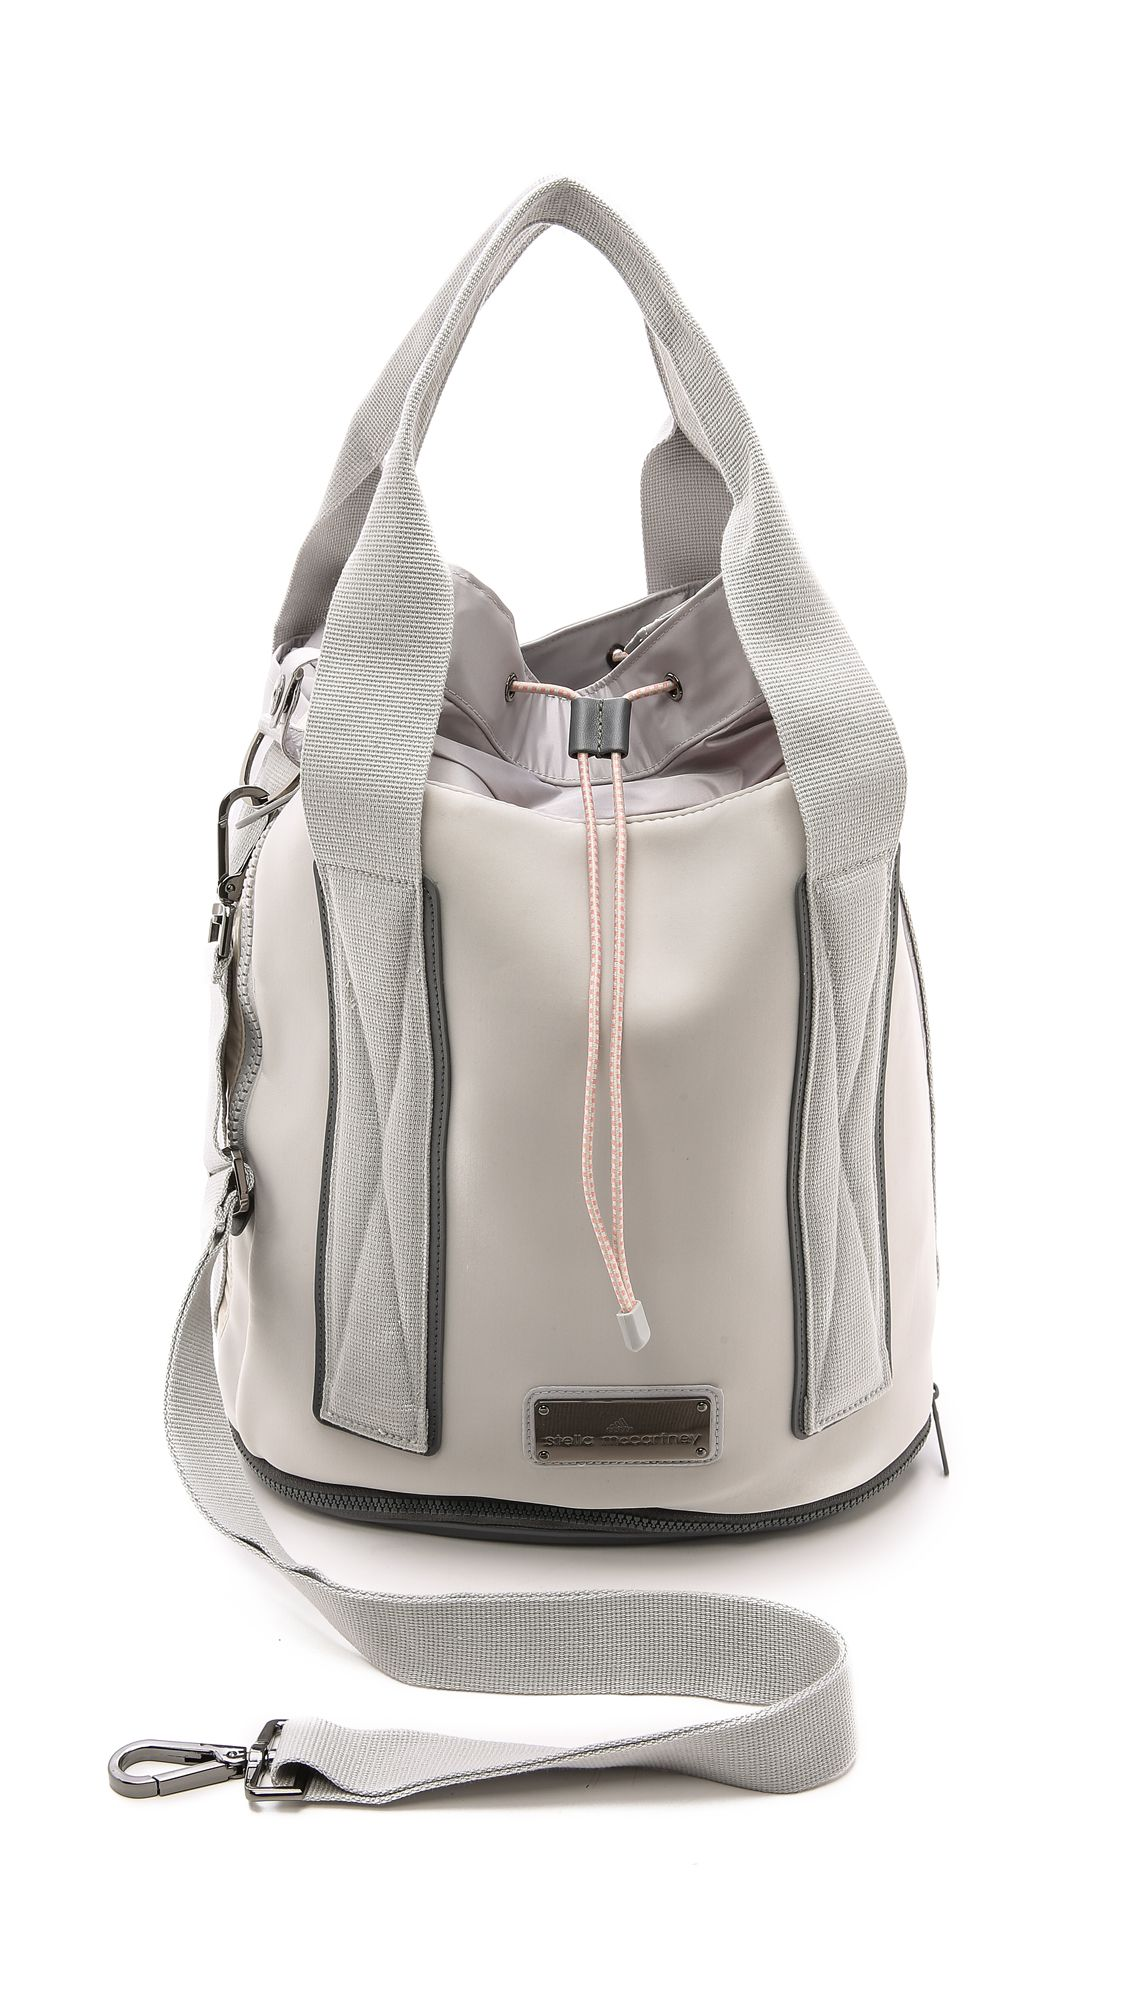 474f8e6263 adidas by Stella McCartney Tennis Bag- amazing how she can design a sport bag  and make it look like a chic and trendy statement bag.